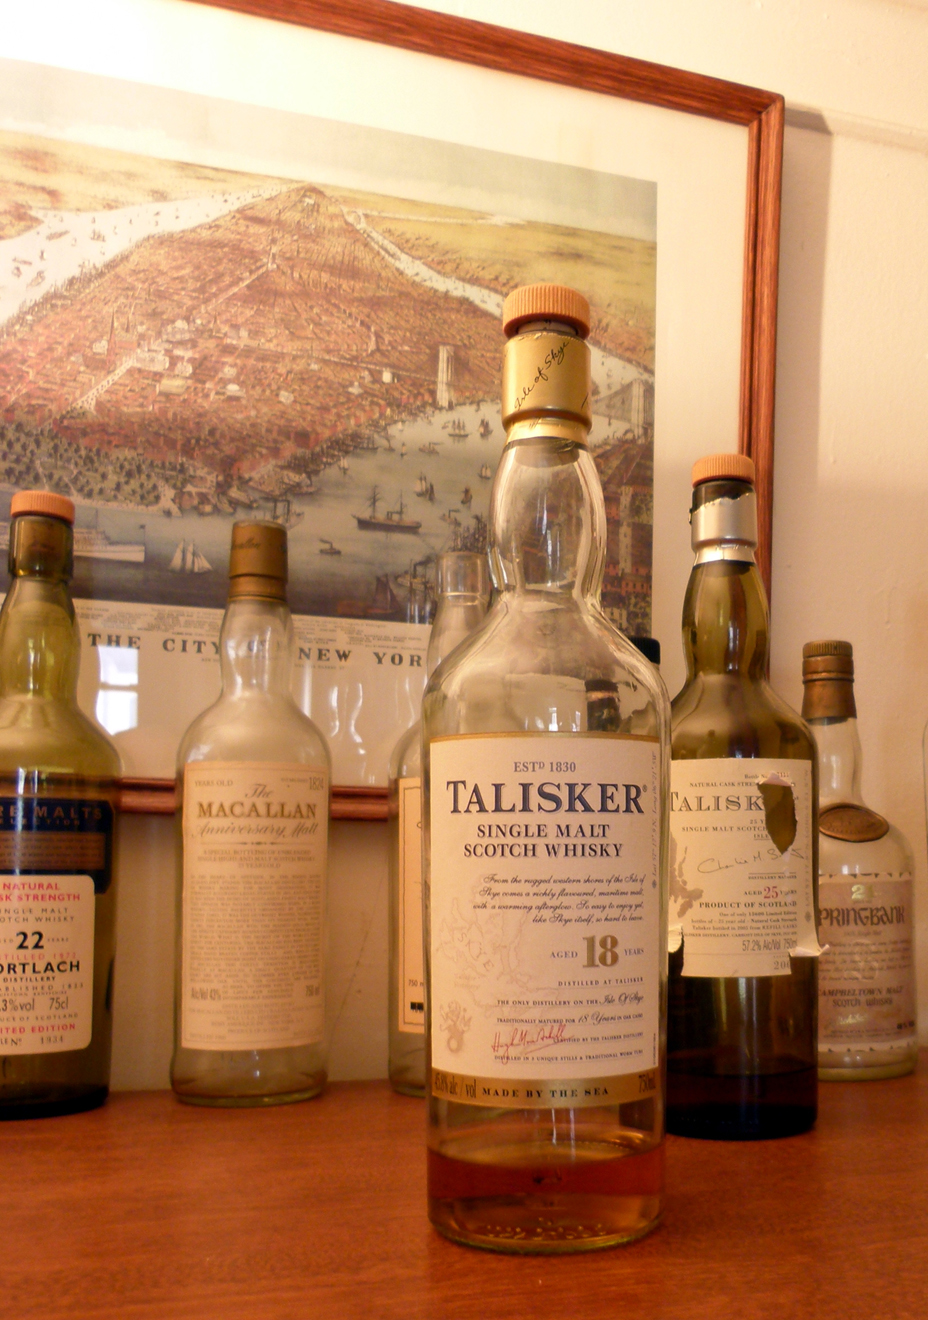 Talisker 18 Review pic One Man's Malt 1mansmalt.com